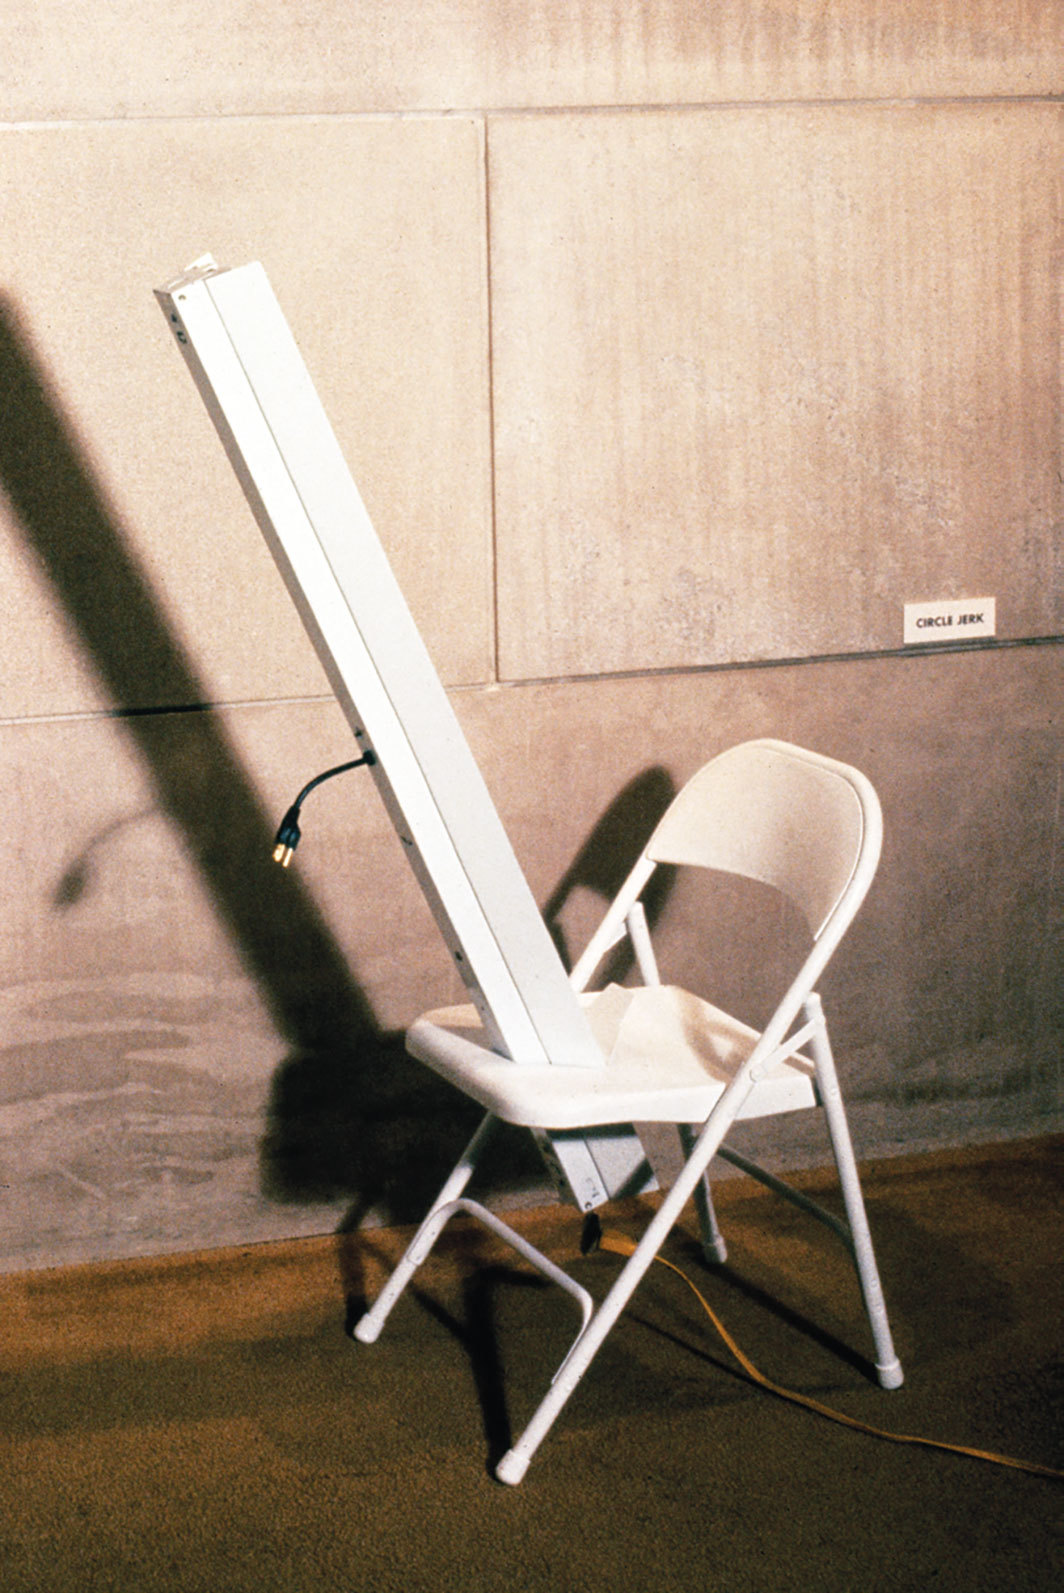 Rachel Harrison, Circle Jerk, 1989, metal folding chair, fluorescent light, extension cord, wood, motor, paintbrush, electrical box, wiring, light switch, metallic paint on canvas, dimensions variable.